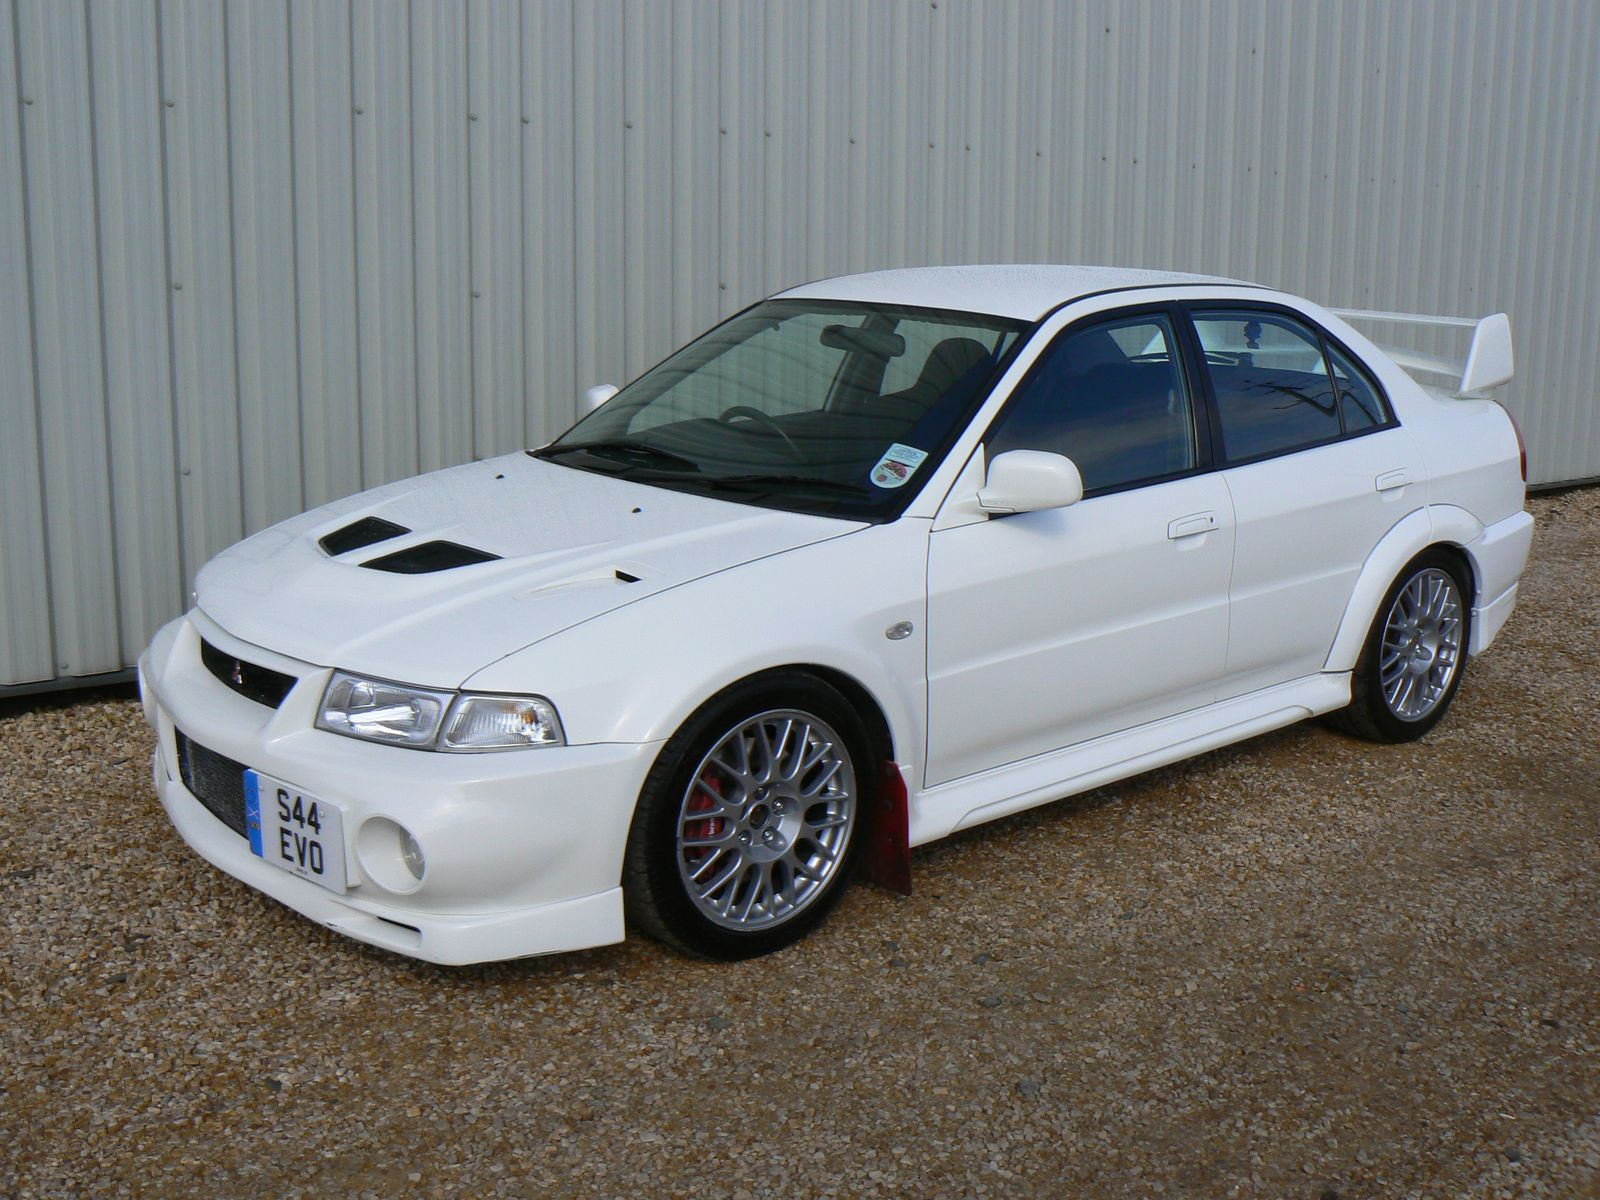 3dtuning Of Mitsubishi Lancer Evo Vi Sedan 1999 3dtuning